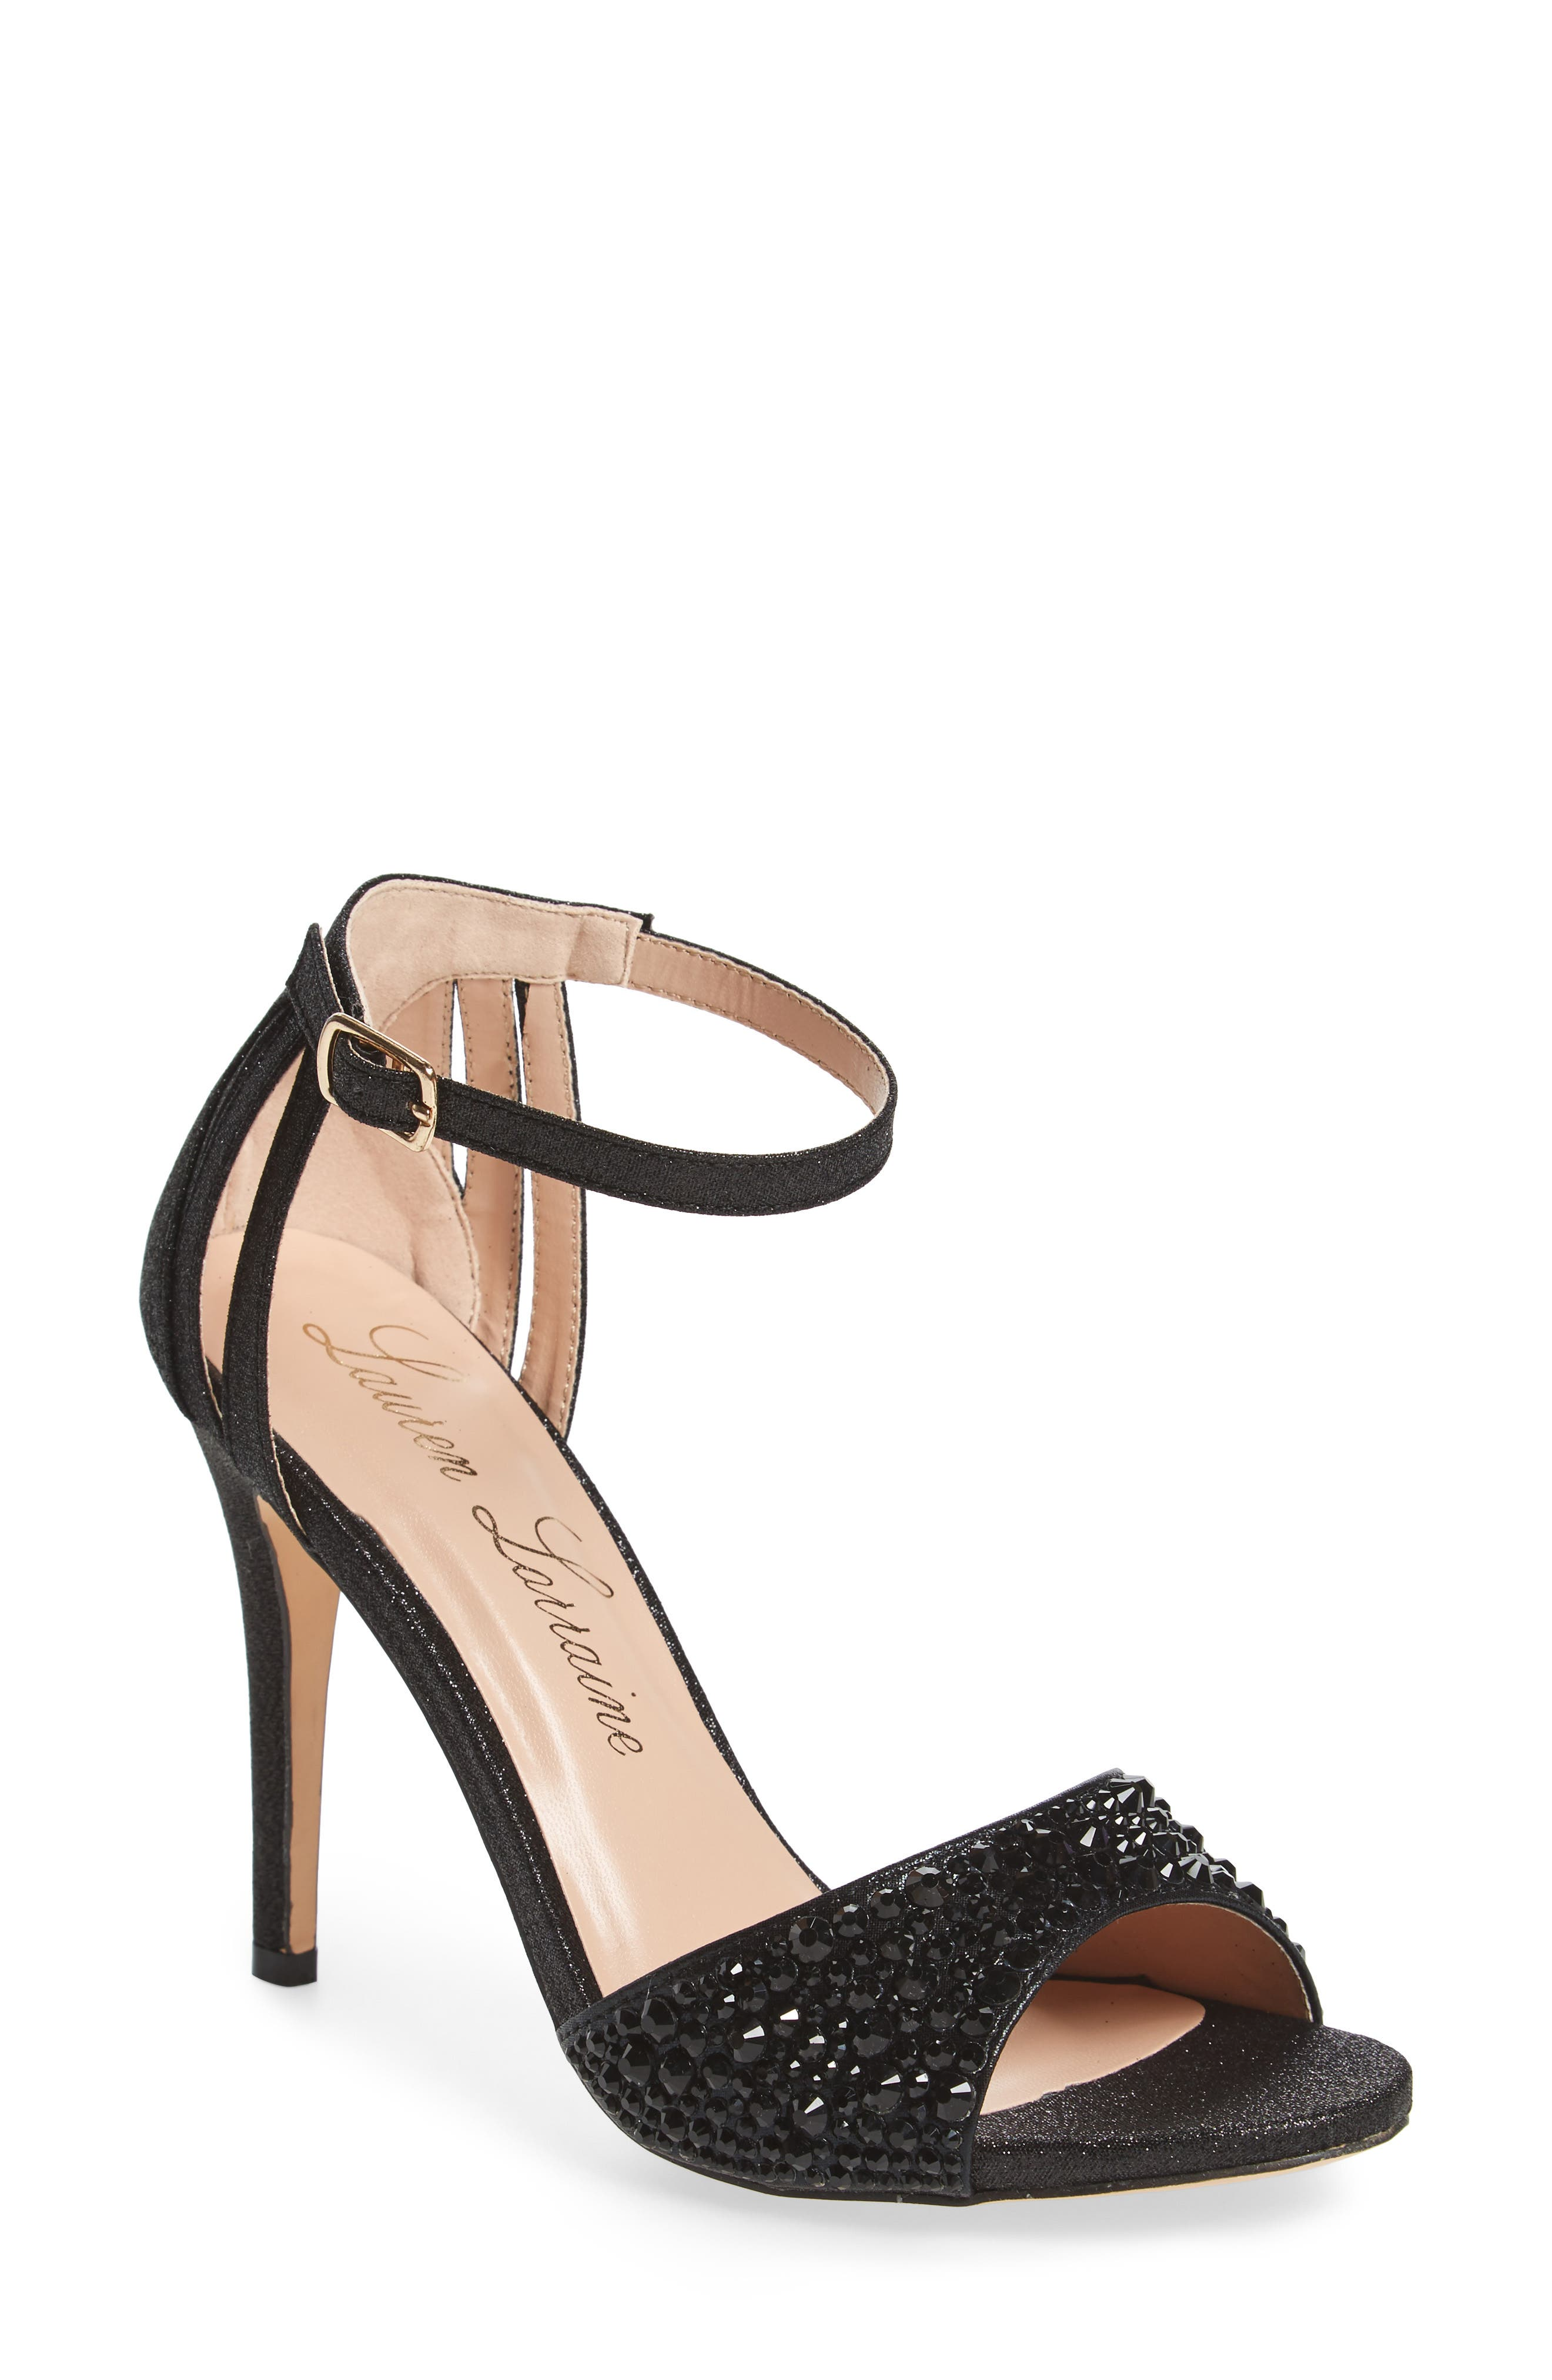 Lauren Lorraine Maddy Embellished Sandal (Women)